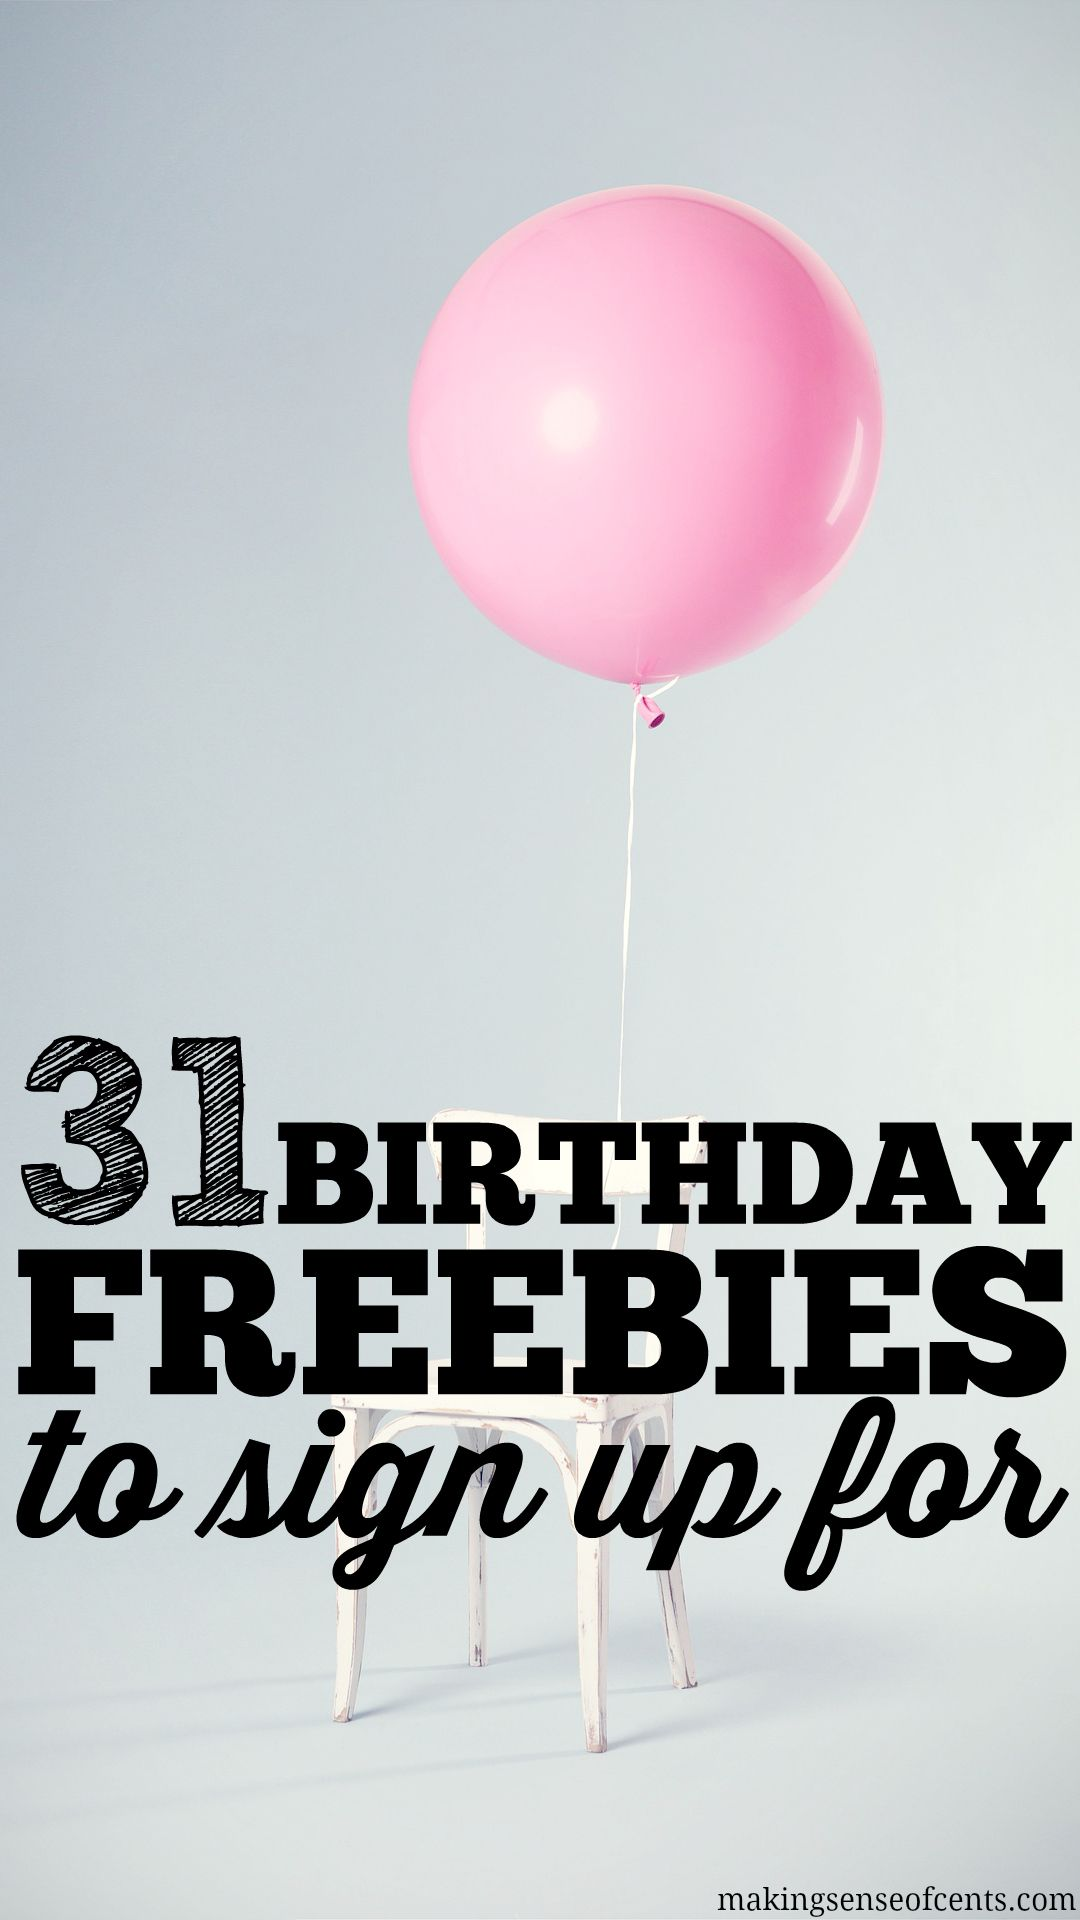 sign up for free birthday stuff ; 216161d78bb1ae6b114fb8c1c2bc0e7b